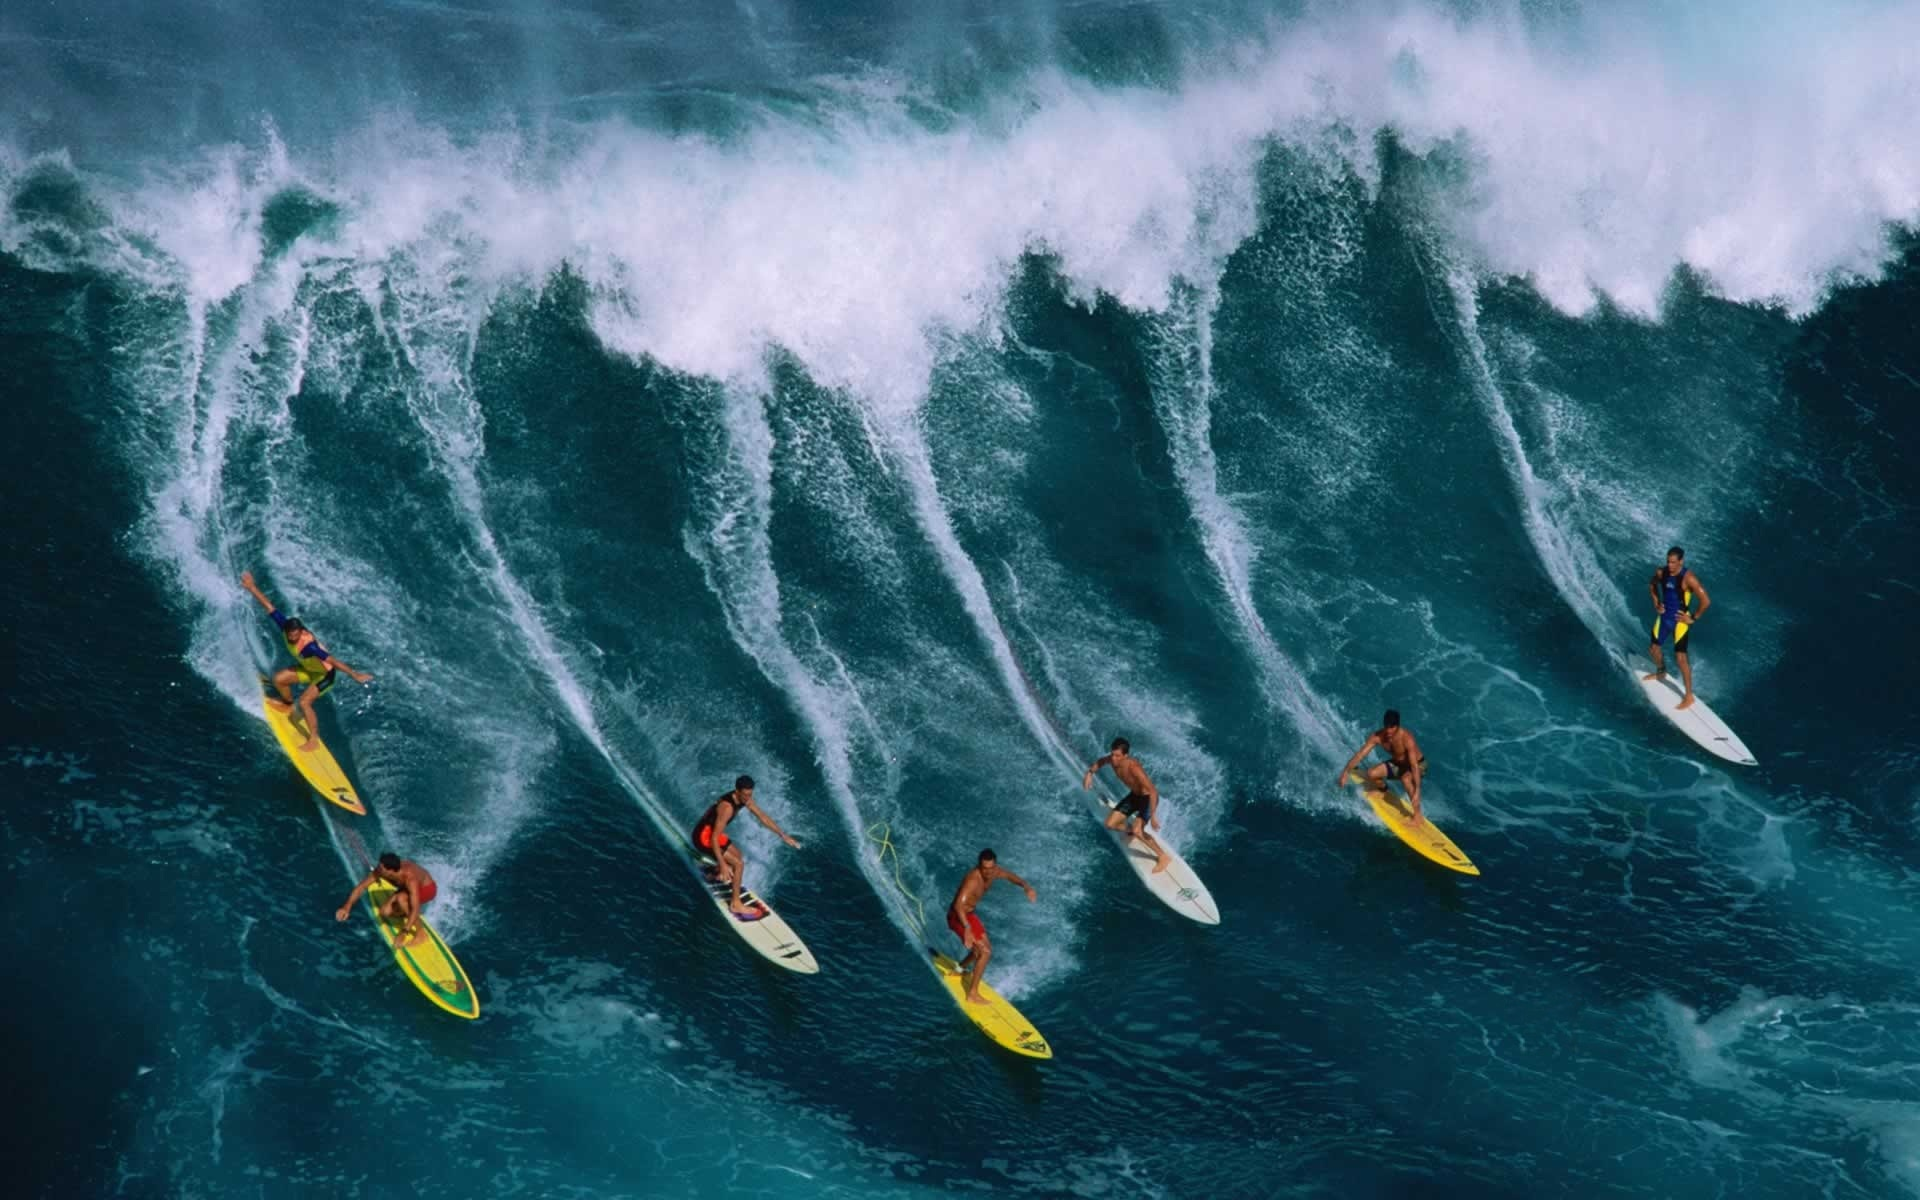 Surfing Computer Wallpapers Desktop Backgrounds 1920x1200 ID 1920x1200